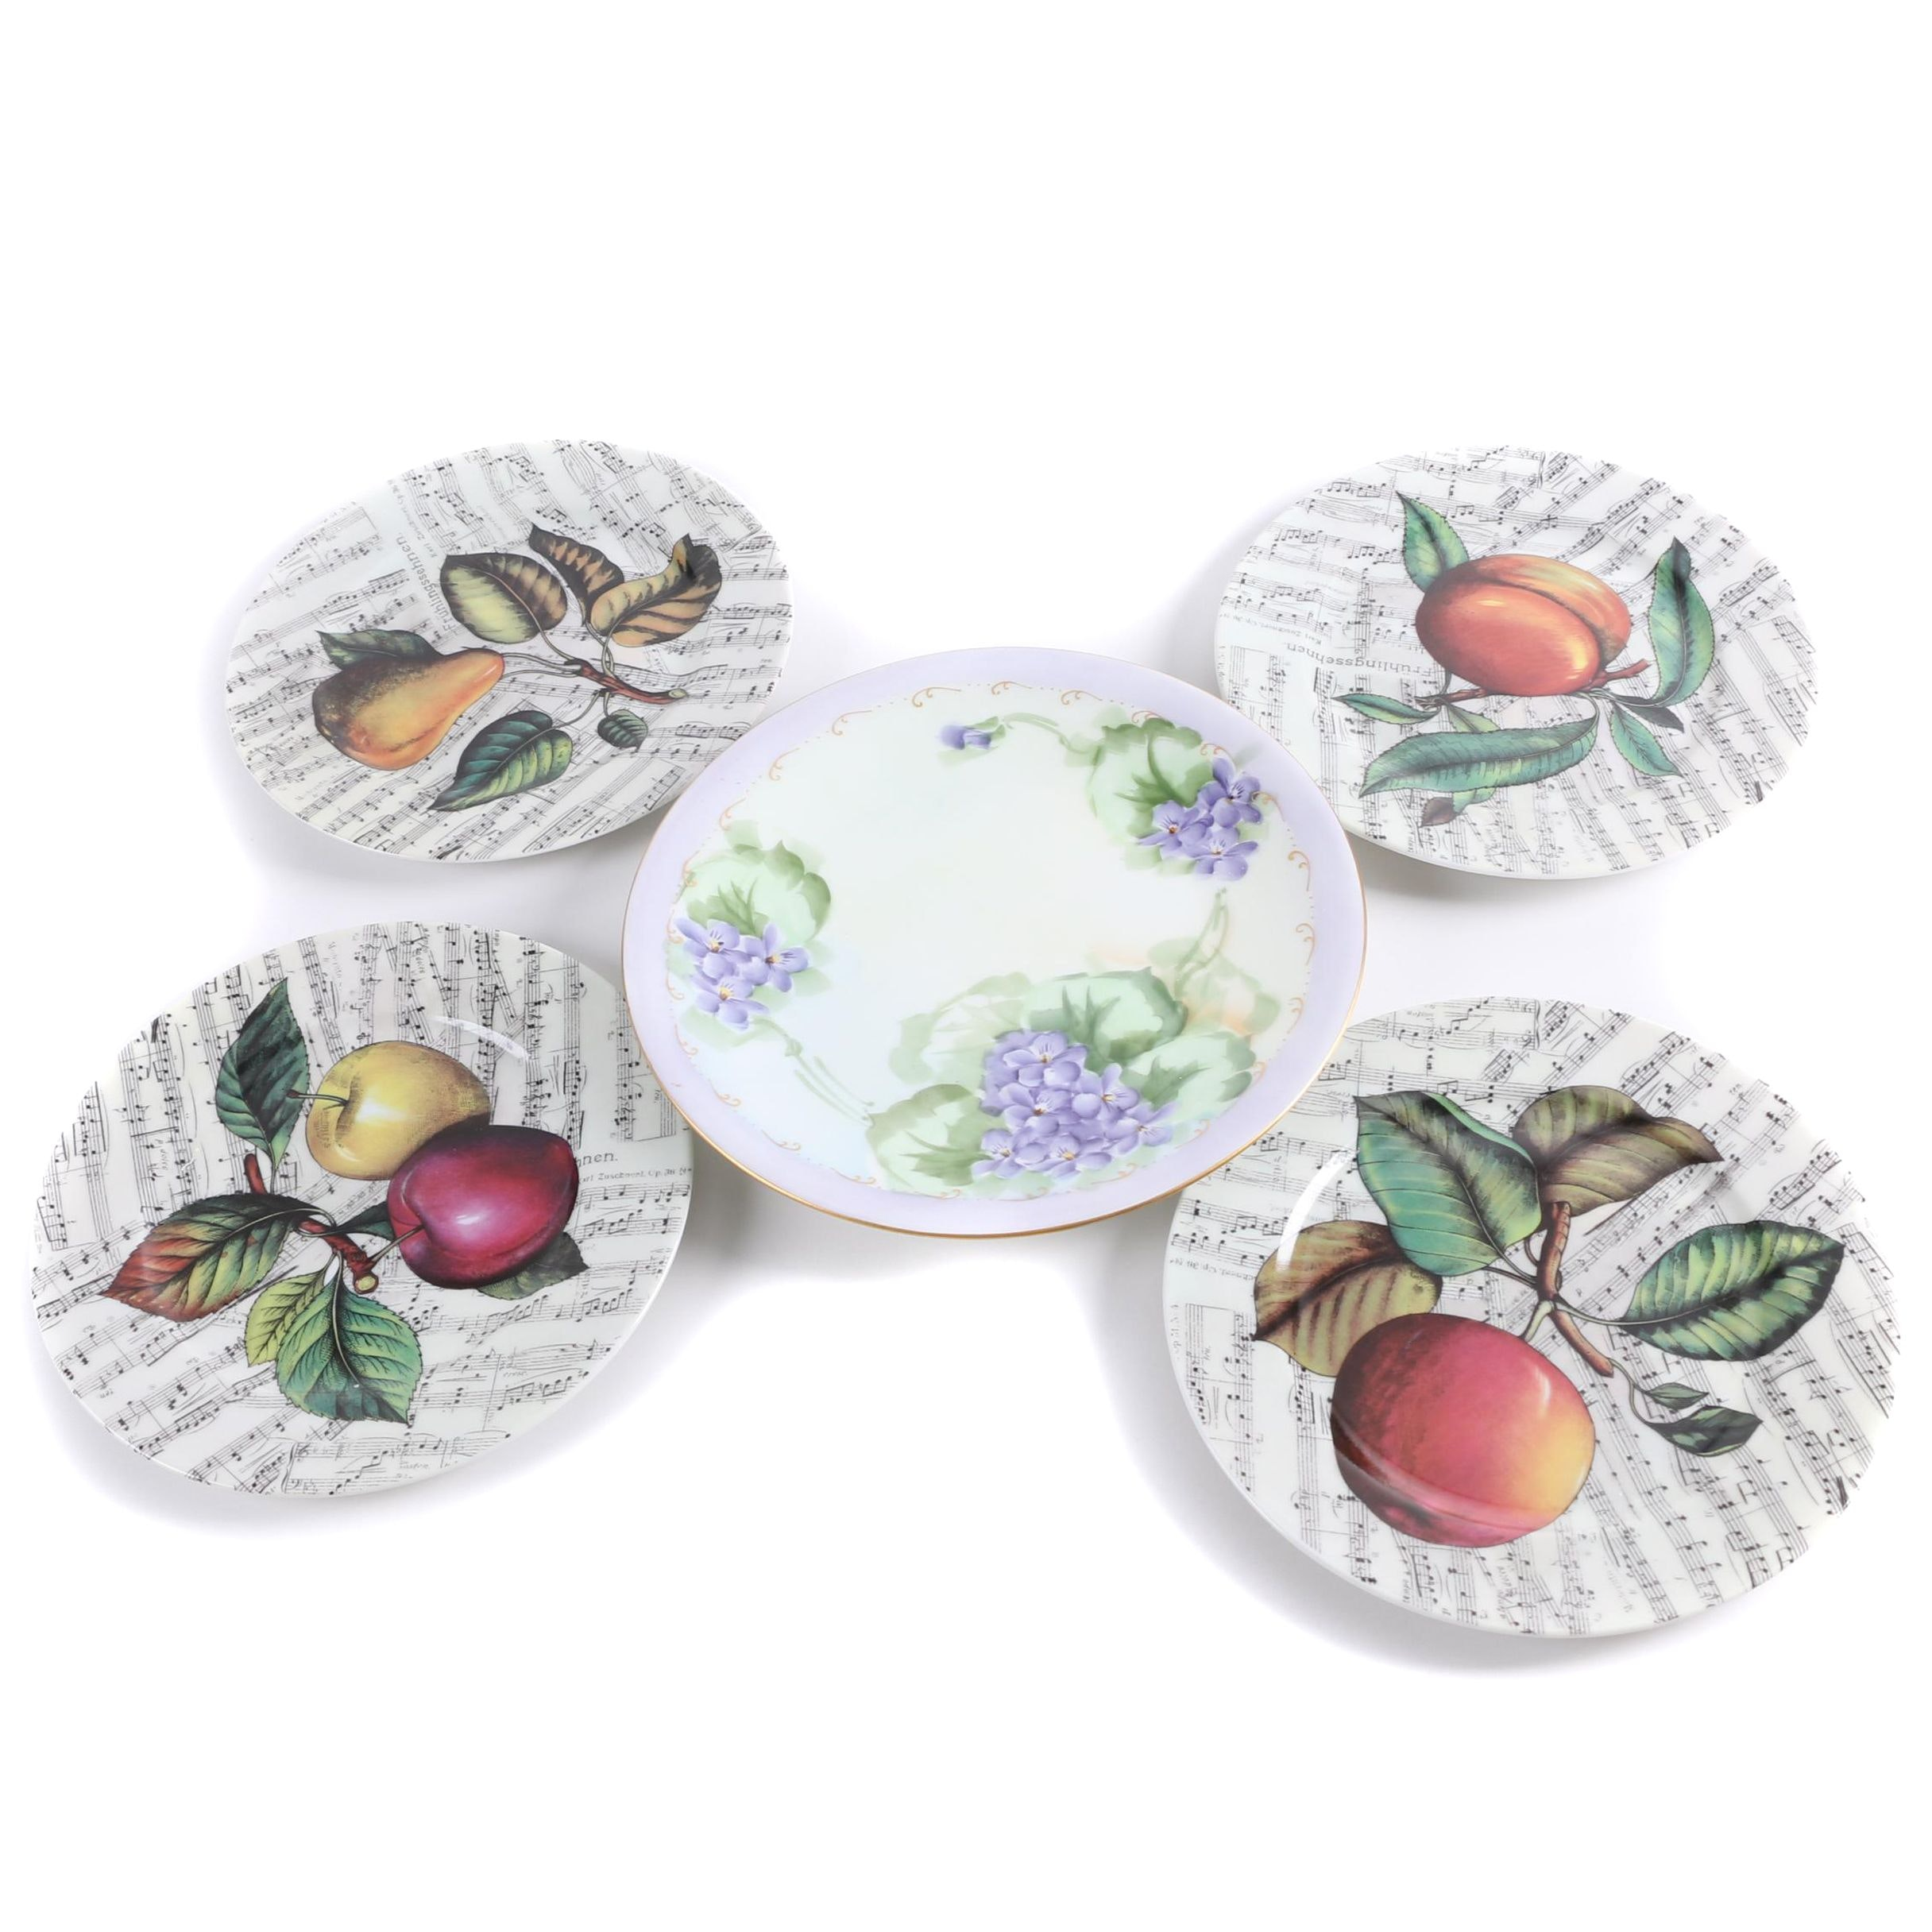 I Godinger Fruits with Sheet Music and Limoges Floral Plates